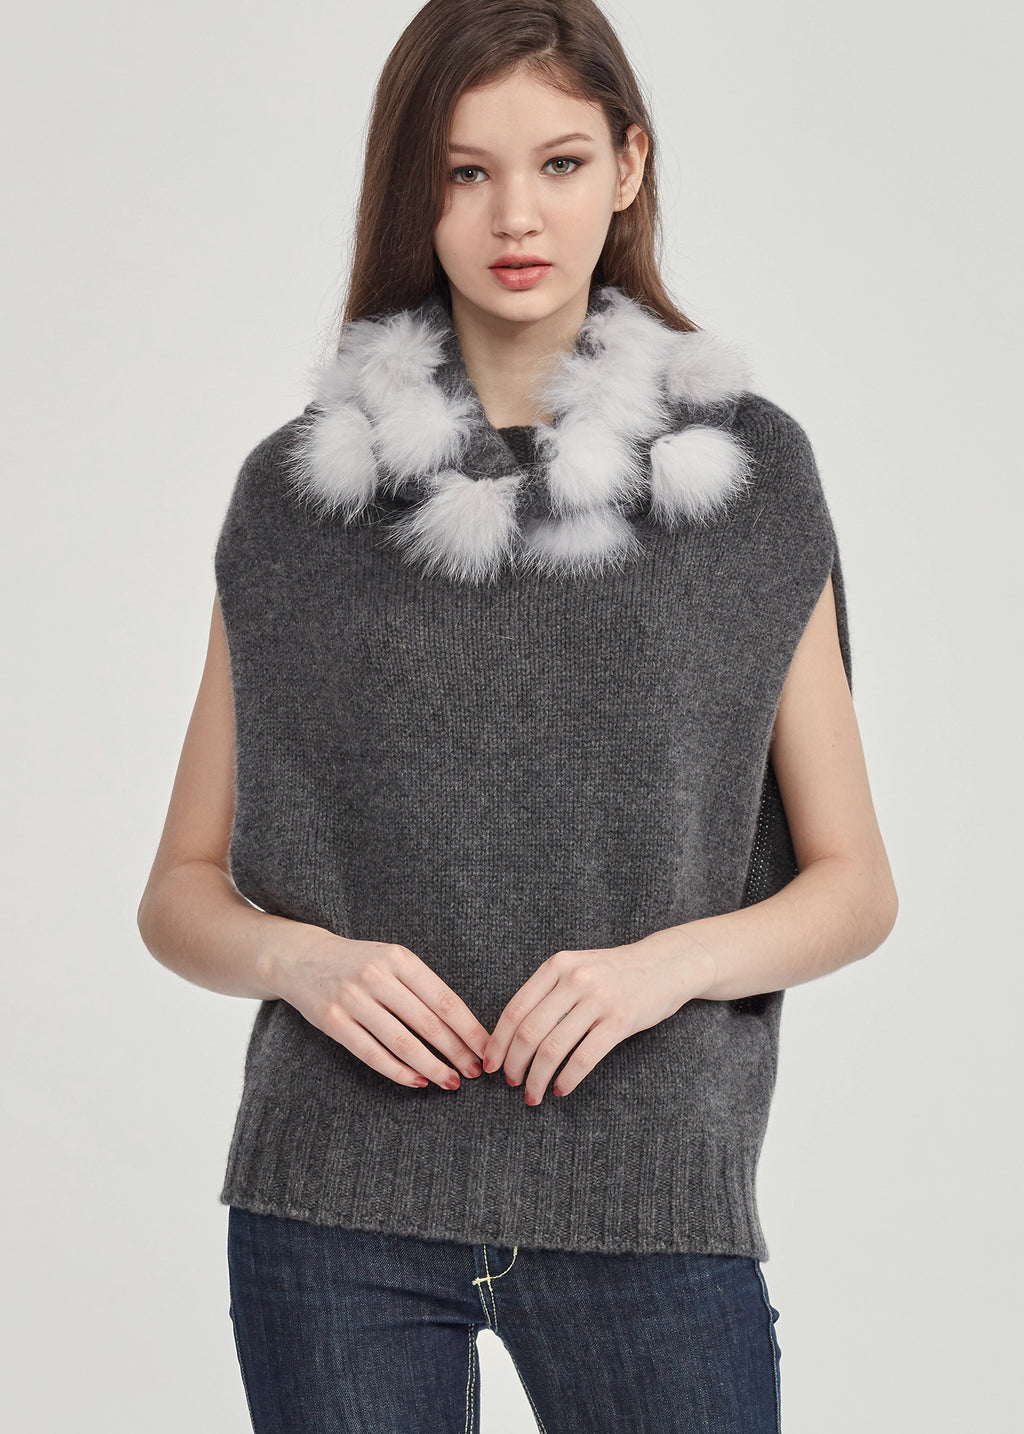 Turtleneck Cashmere Vest with Faux Fur Pom Pom